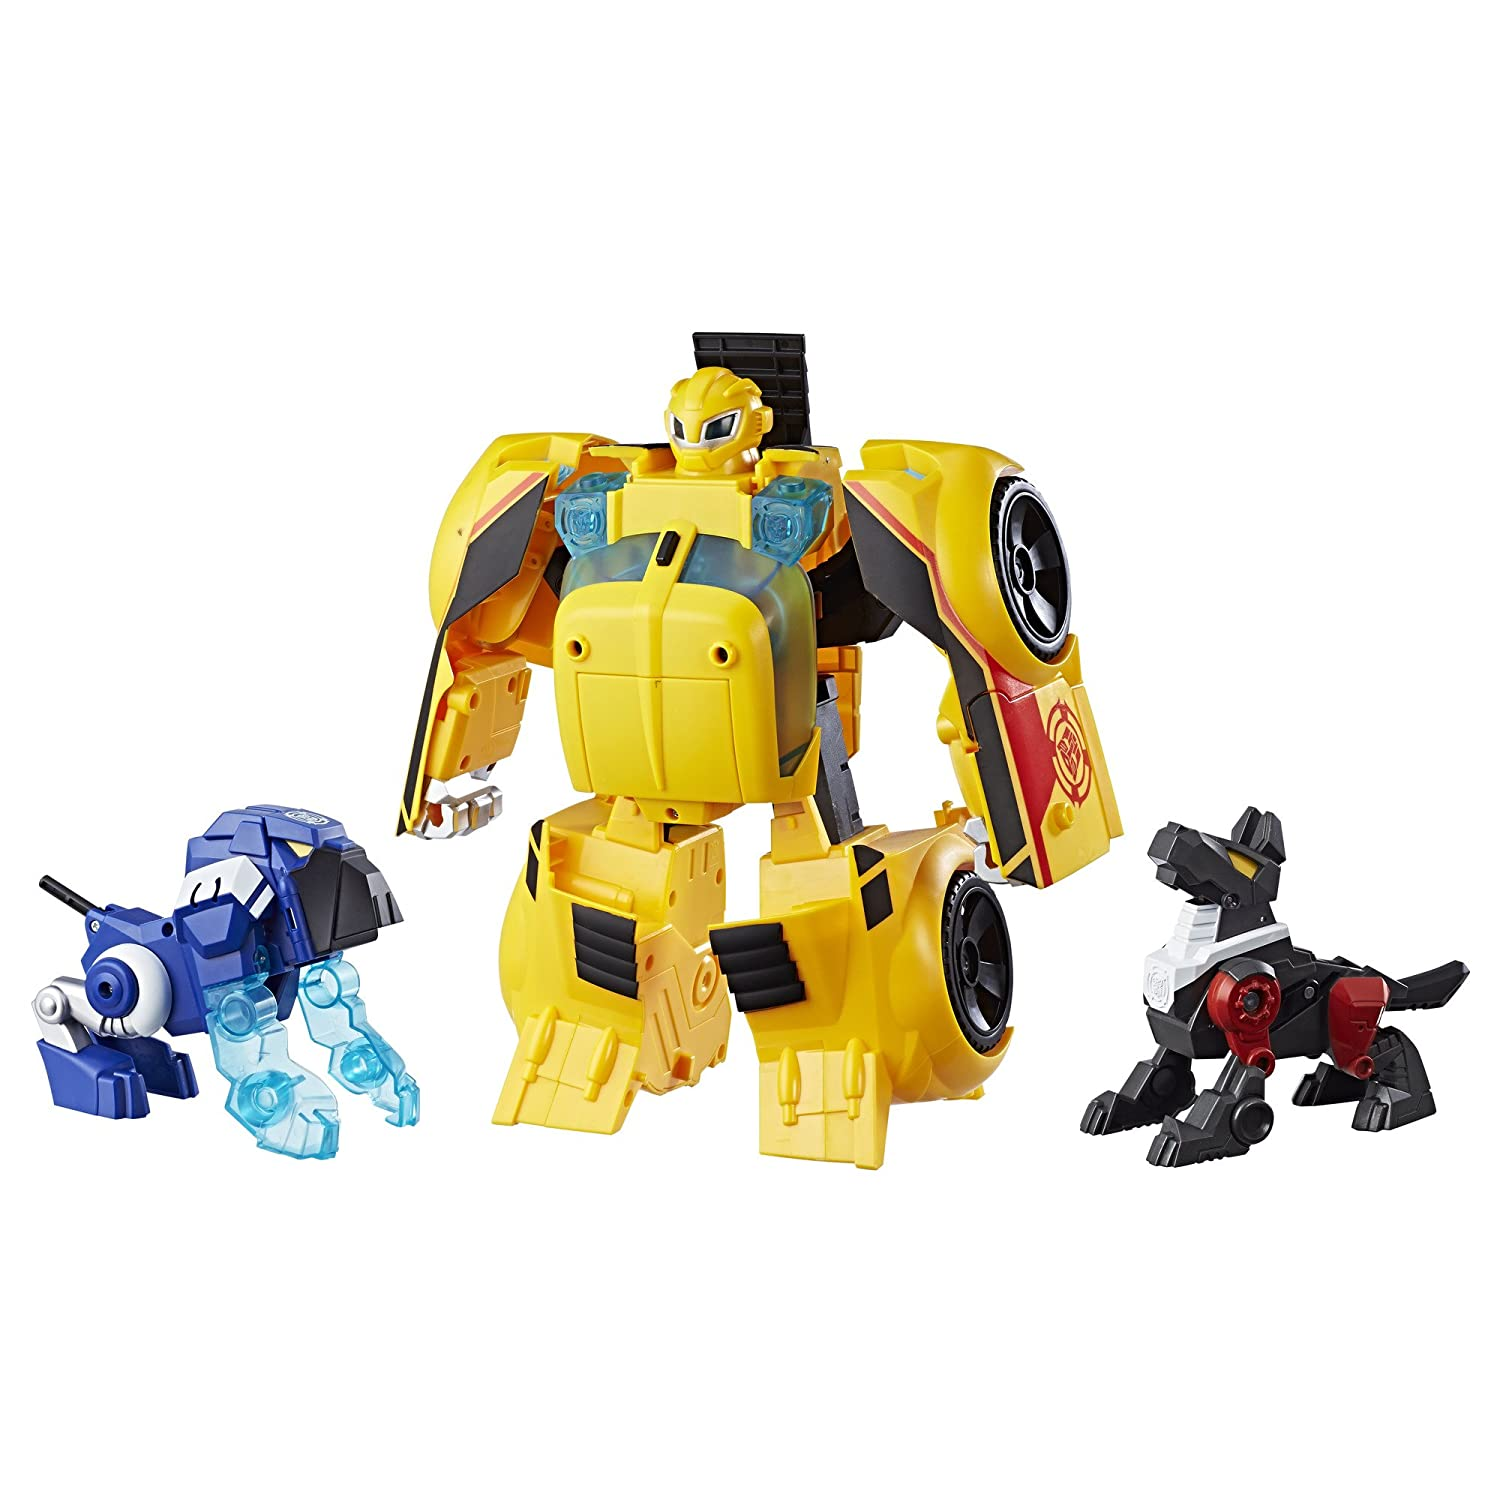 Transformers Rescue Bots Playskool Heroes Growl the K9 Bot Action Figure